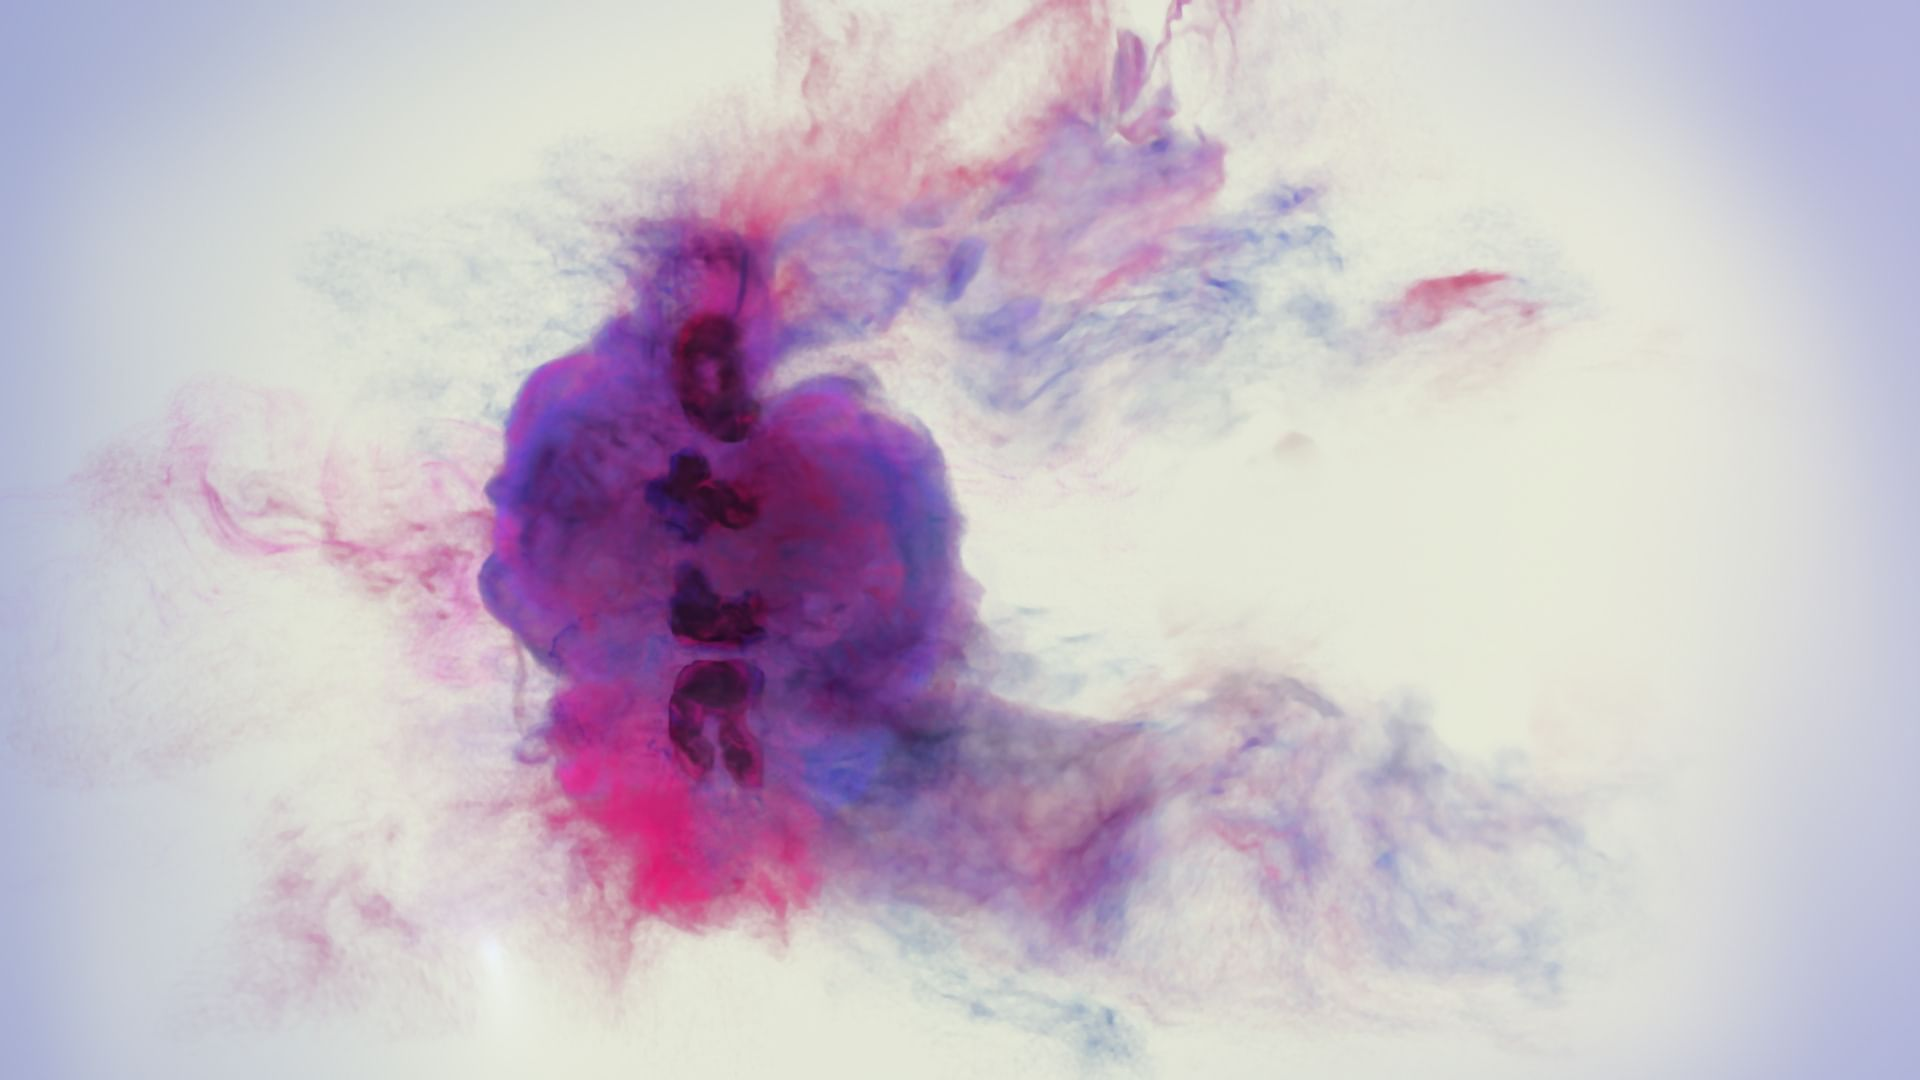 Summer is coming and with it music festivals to put a spring in your step! The festivities kick off with the Art Rock festival in Brittany.